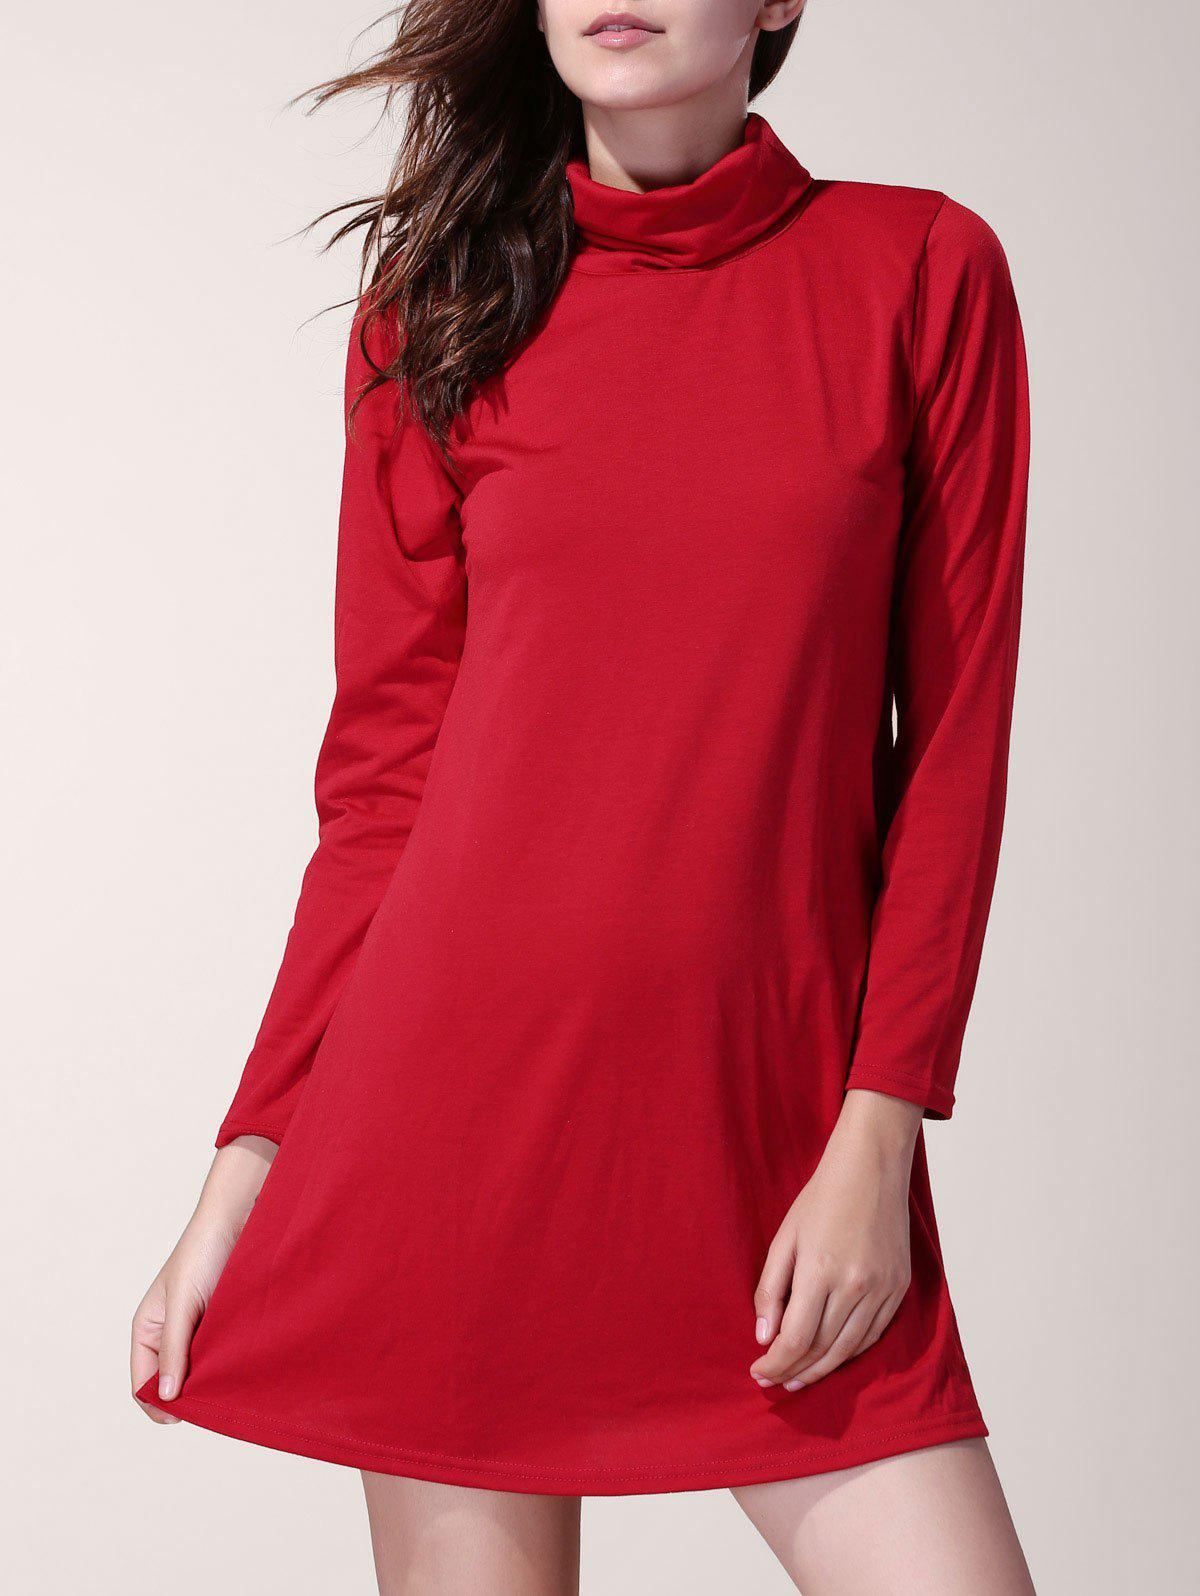 Affordable Women's Chic Long Sleeve Solid Color Turtleneck A-Line Dress